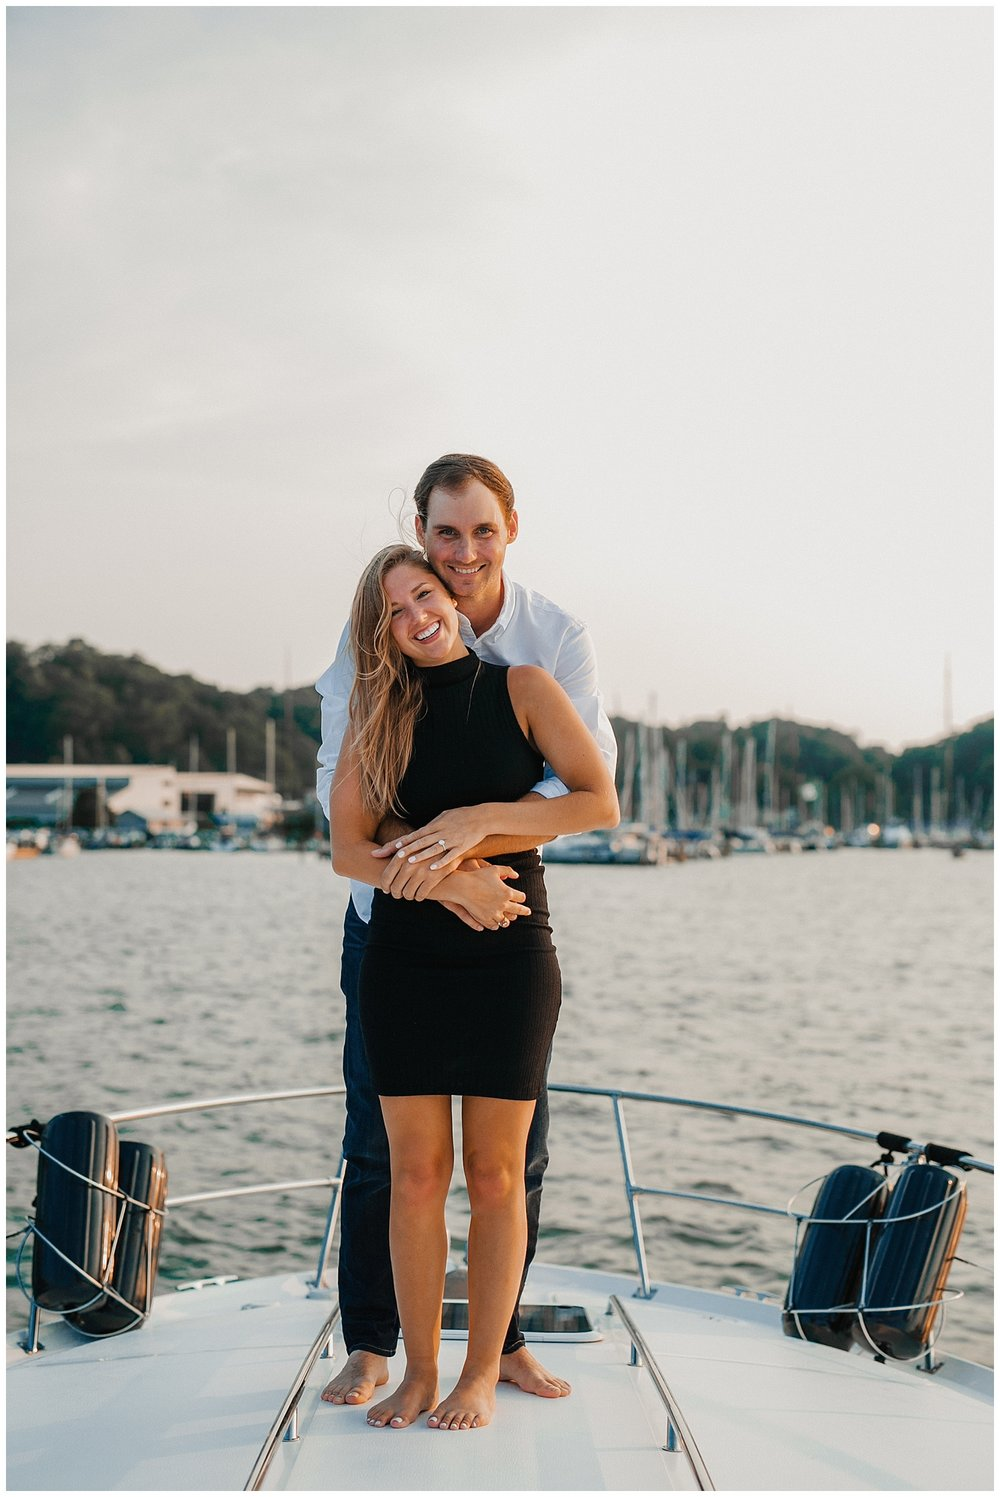 lindybeth photography - proposal - holland state park - emily mitchell-107.jpg